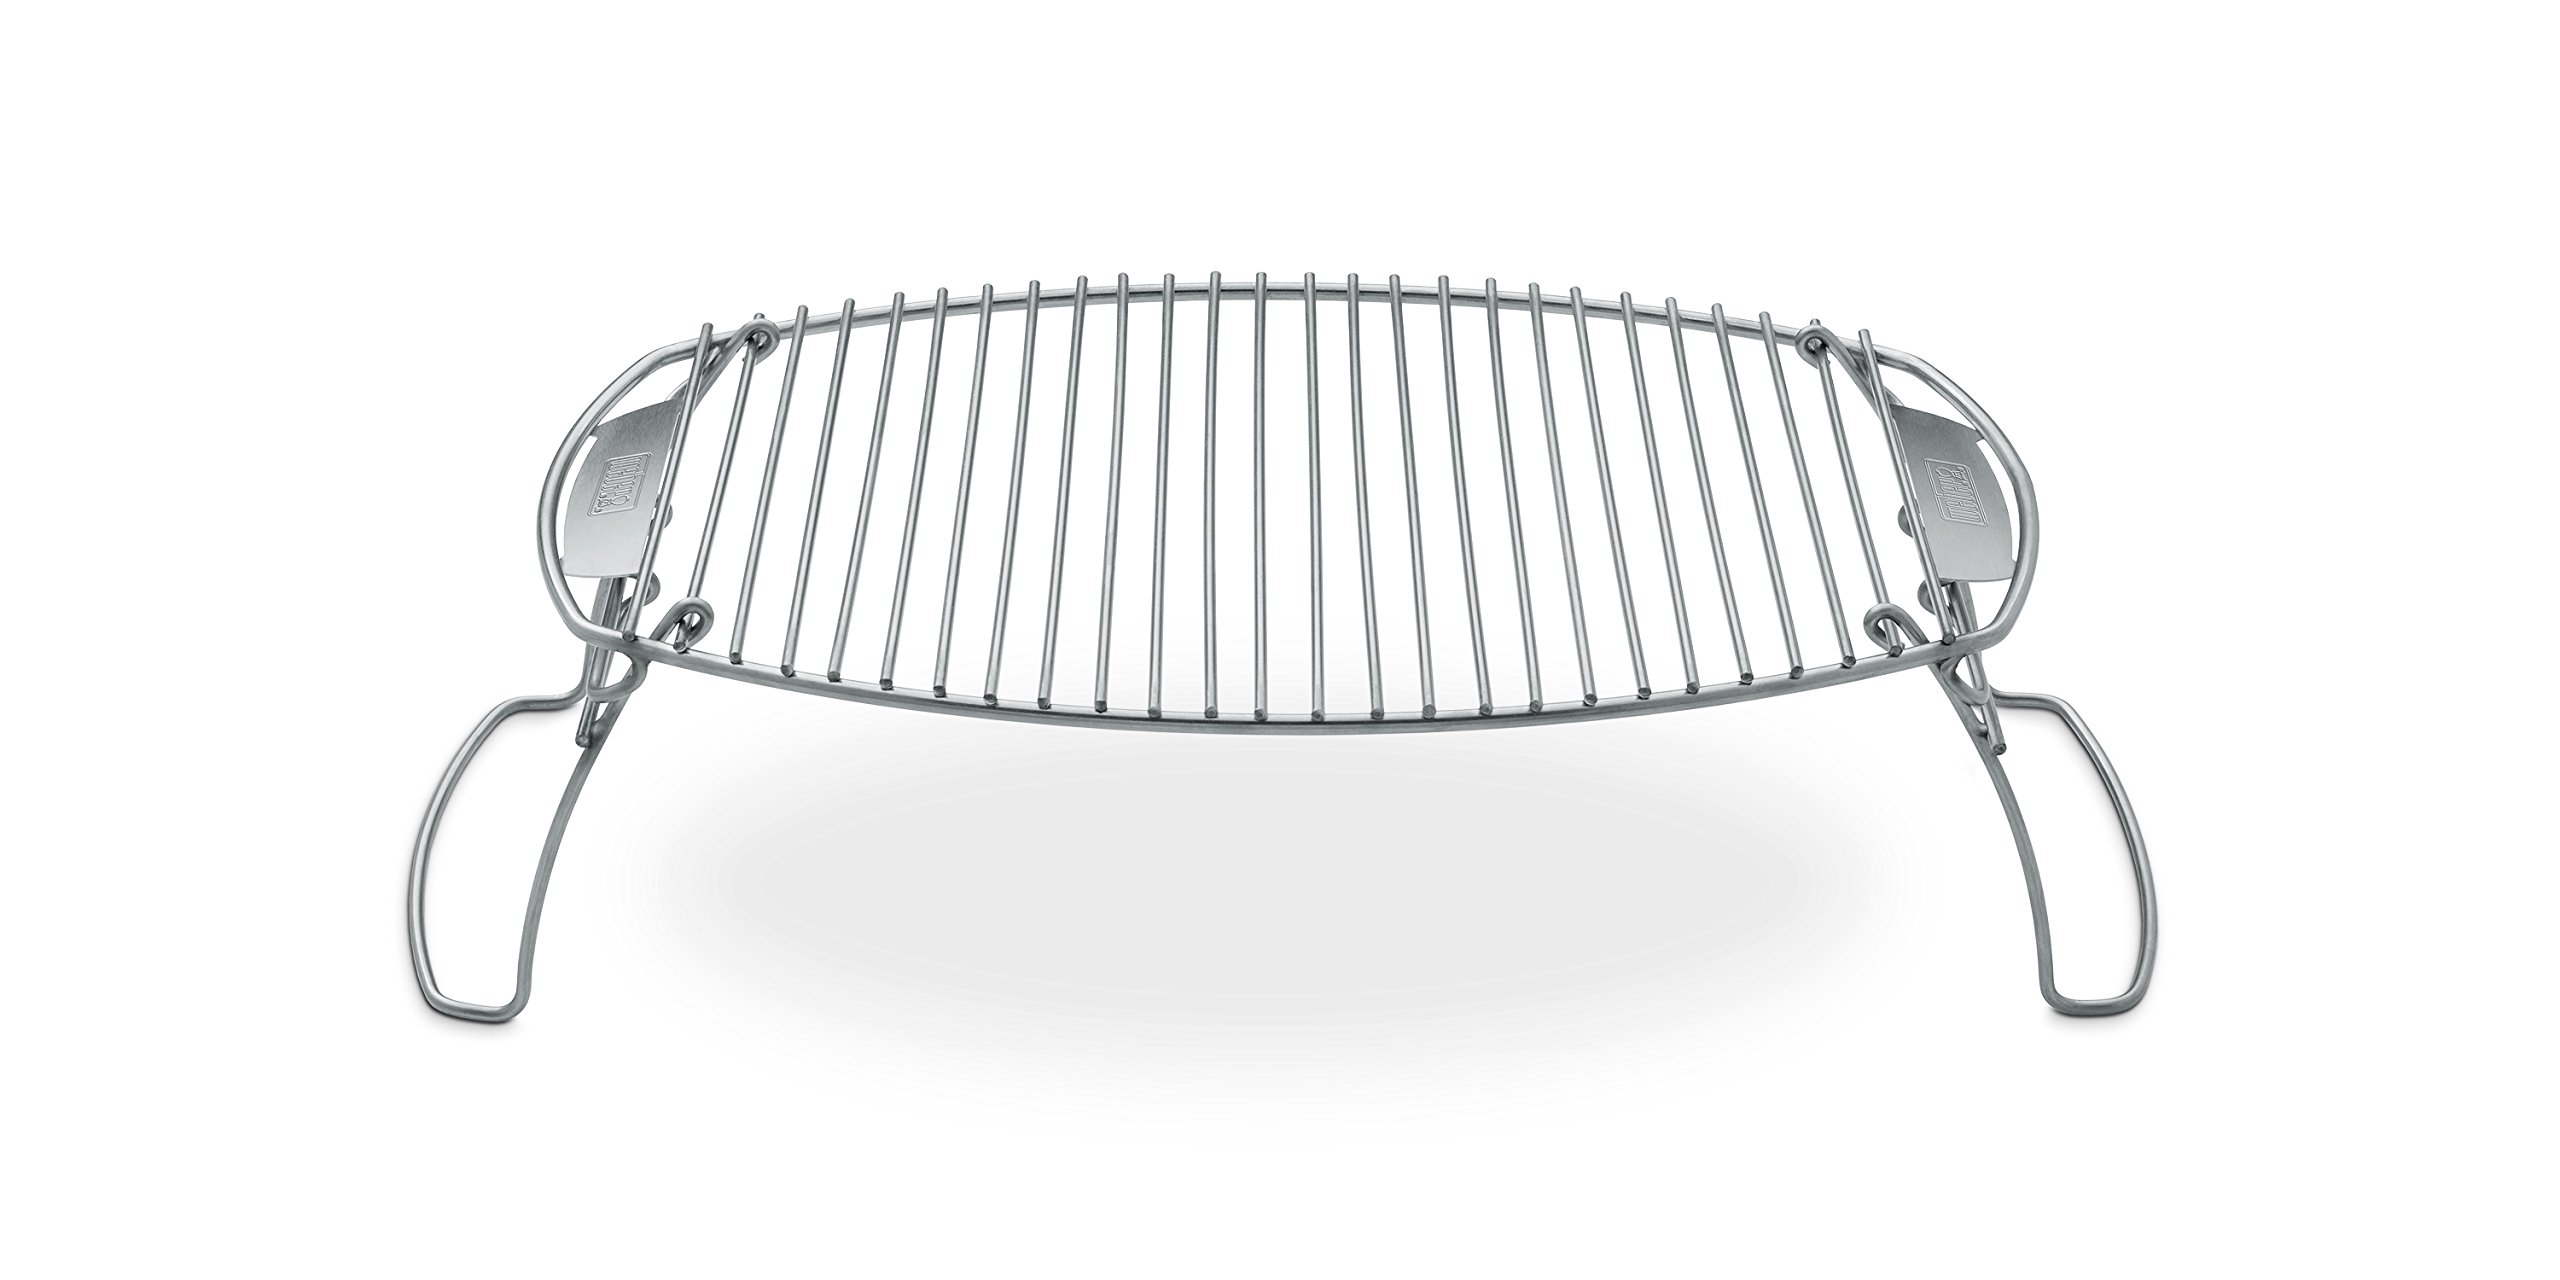 Weber-Stephen Products 7647 22'' x 12'' Expansion Grilling Rack